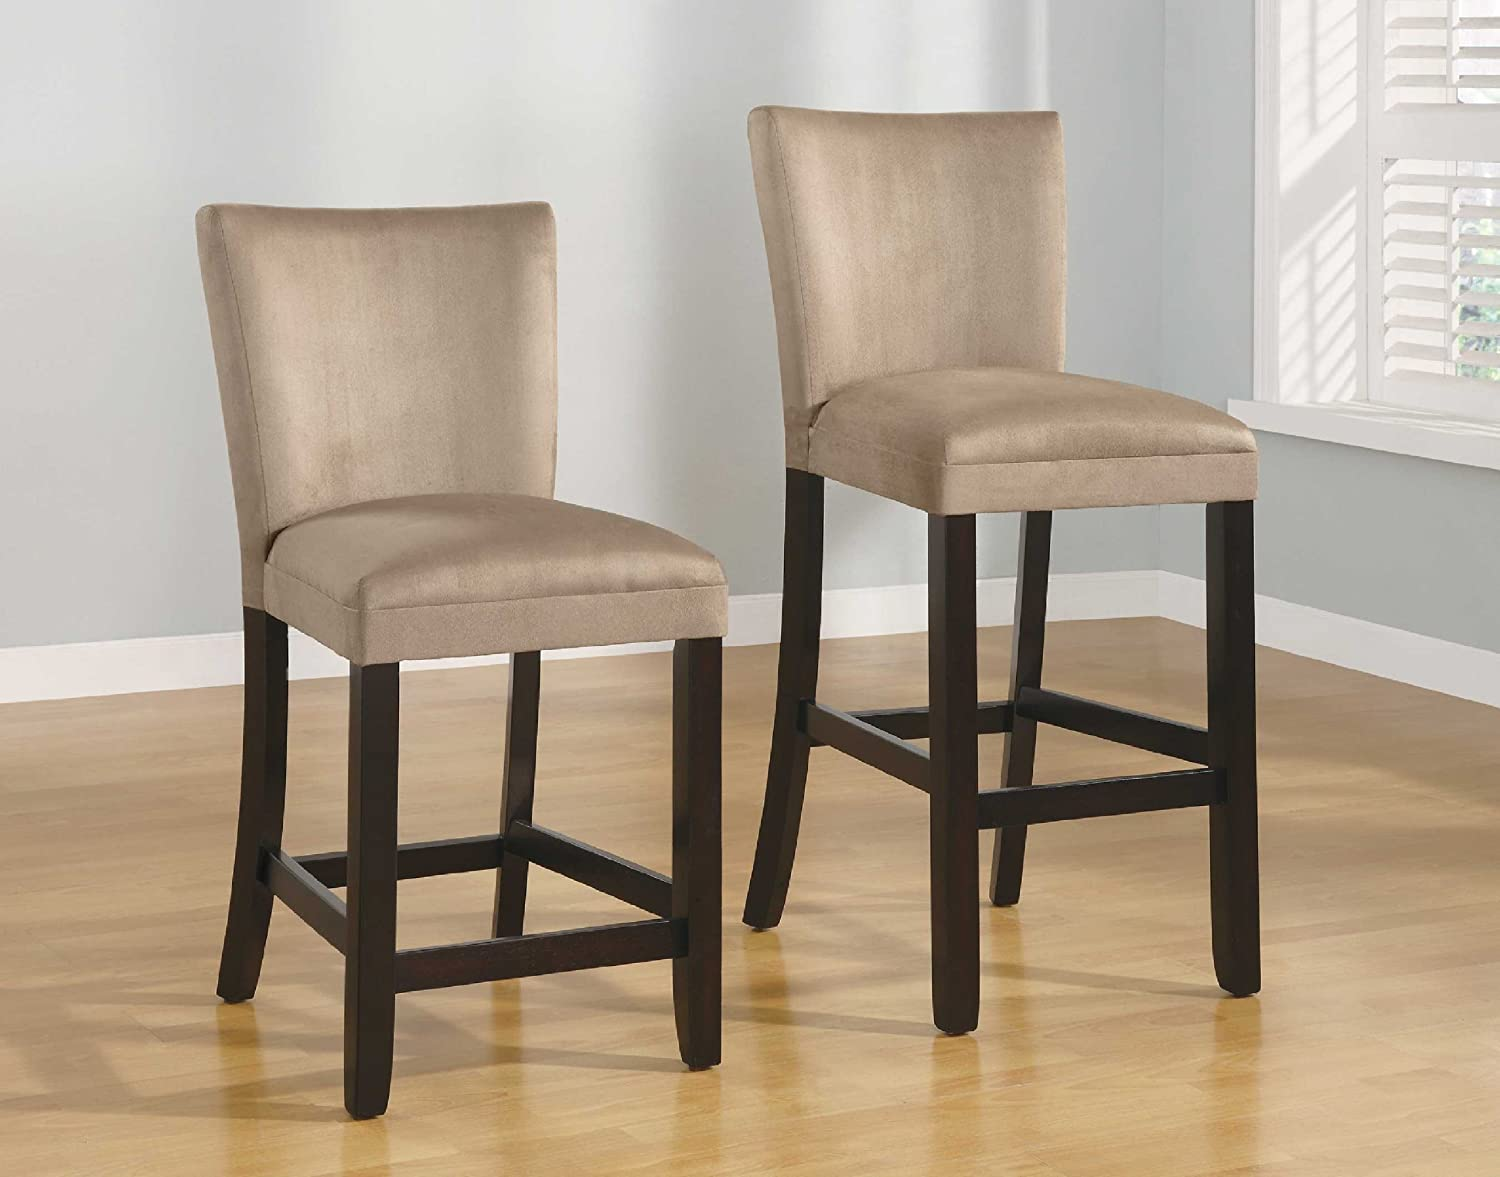 Cheap bar stools with back 2013 for Cheap bar stools set of 4